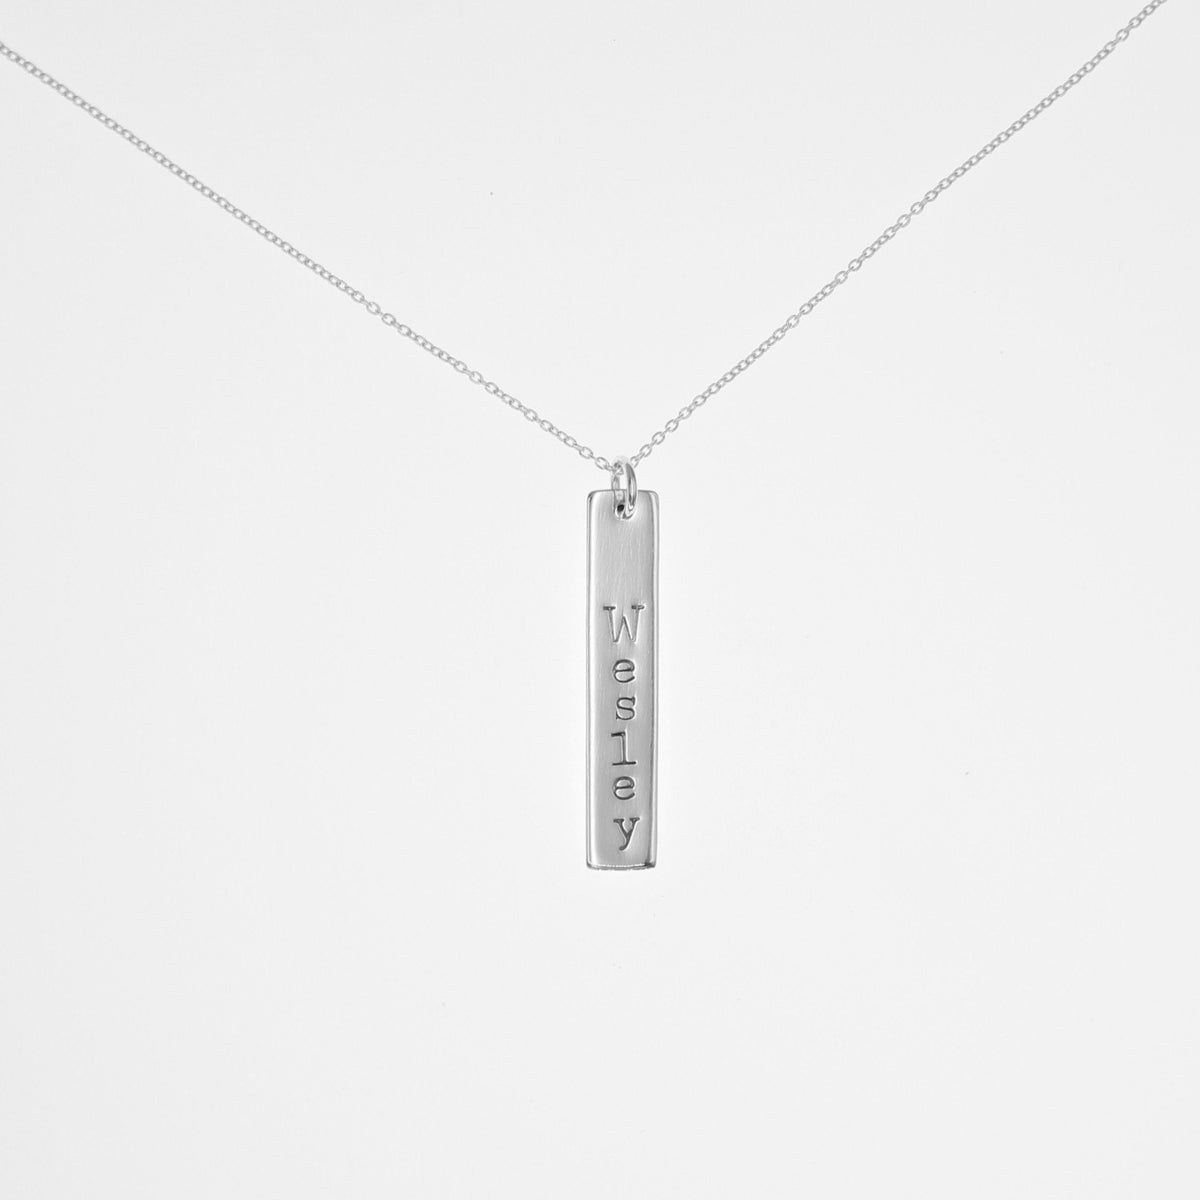 Sterling Silver Vertical Bar Necklace - Love It Personalized